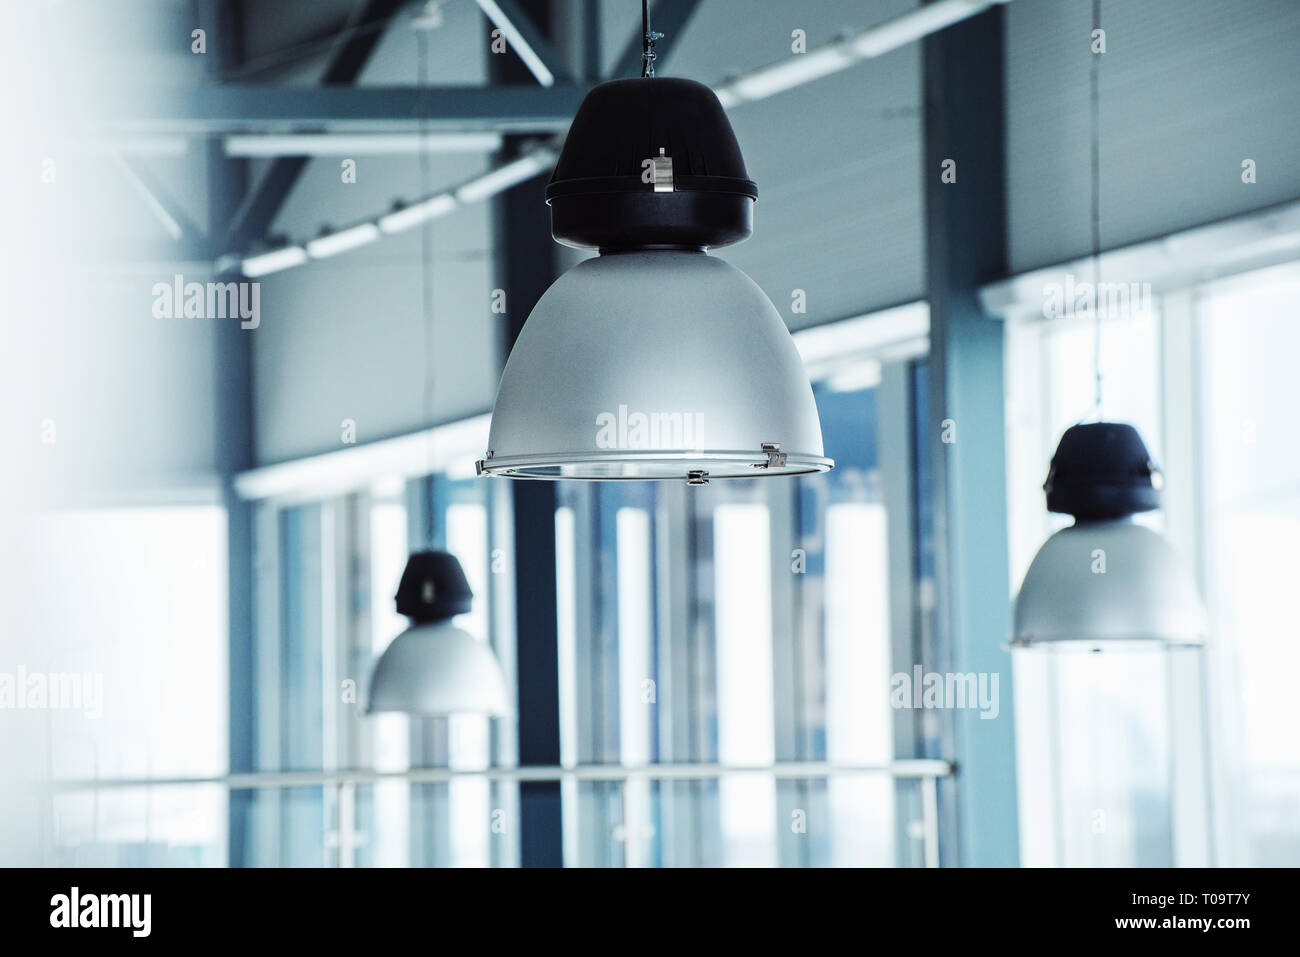 metal lighting fixtures with a shallow depth of field Stock Photo